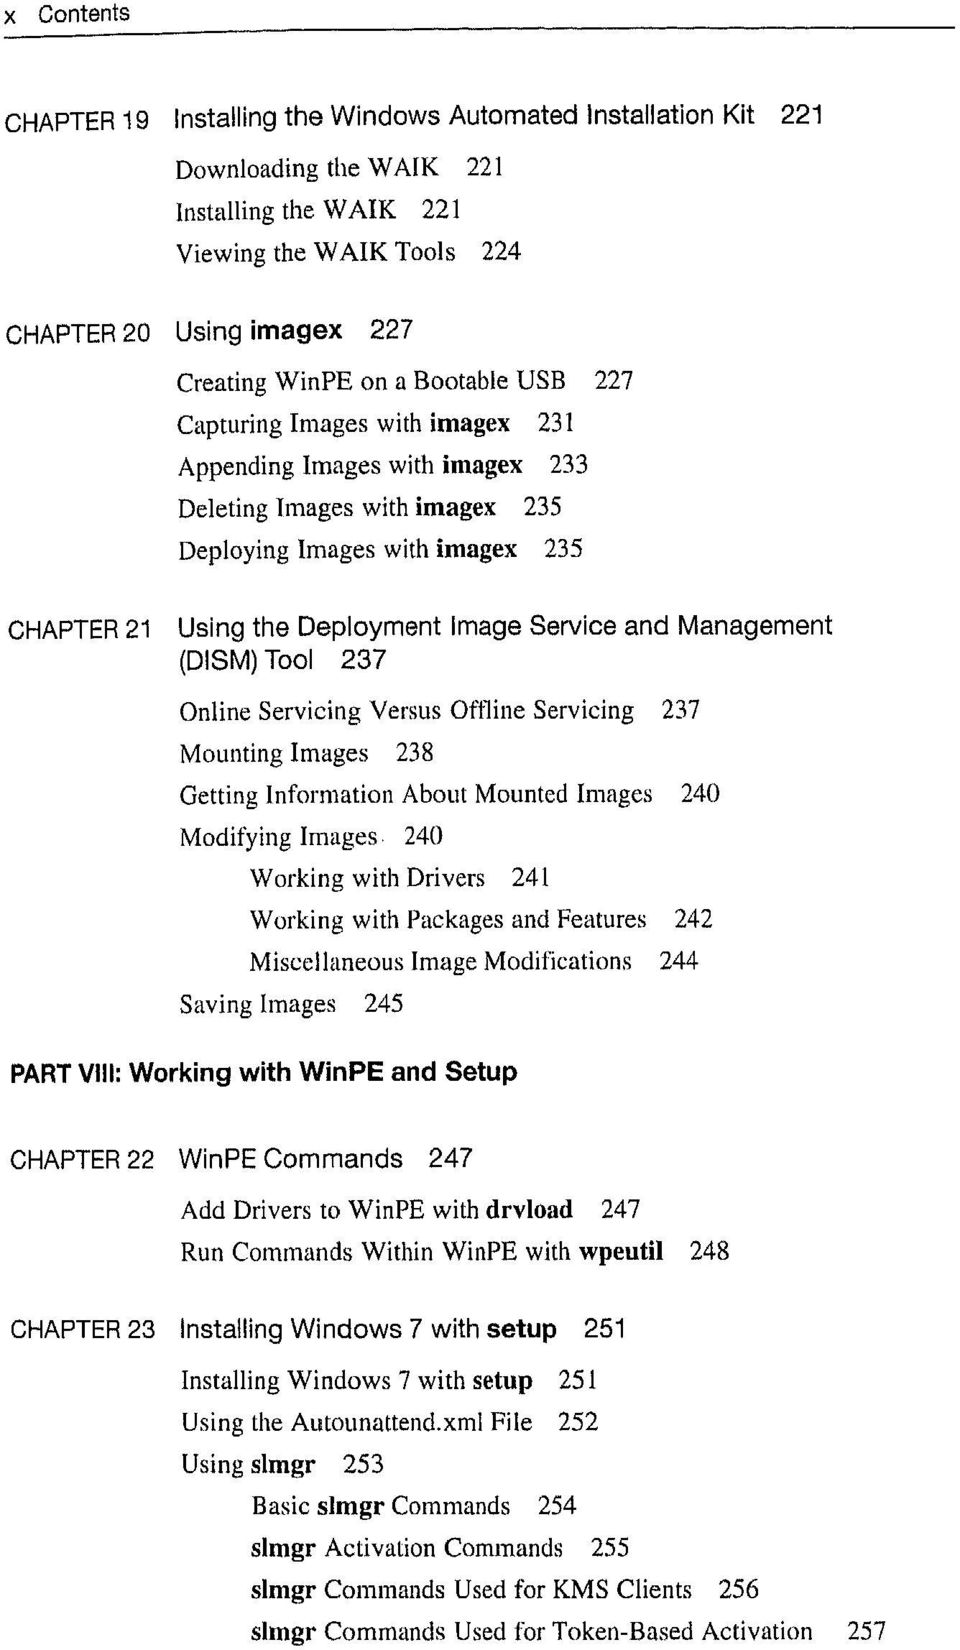 Management (DISM)Tool 237 Online Servicing Versus Offline Servicing 237 Mounting Images 238 Getting Information About Mounted Images 240 Modifying Images 240 Working with Drivers 241 Working with